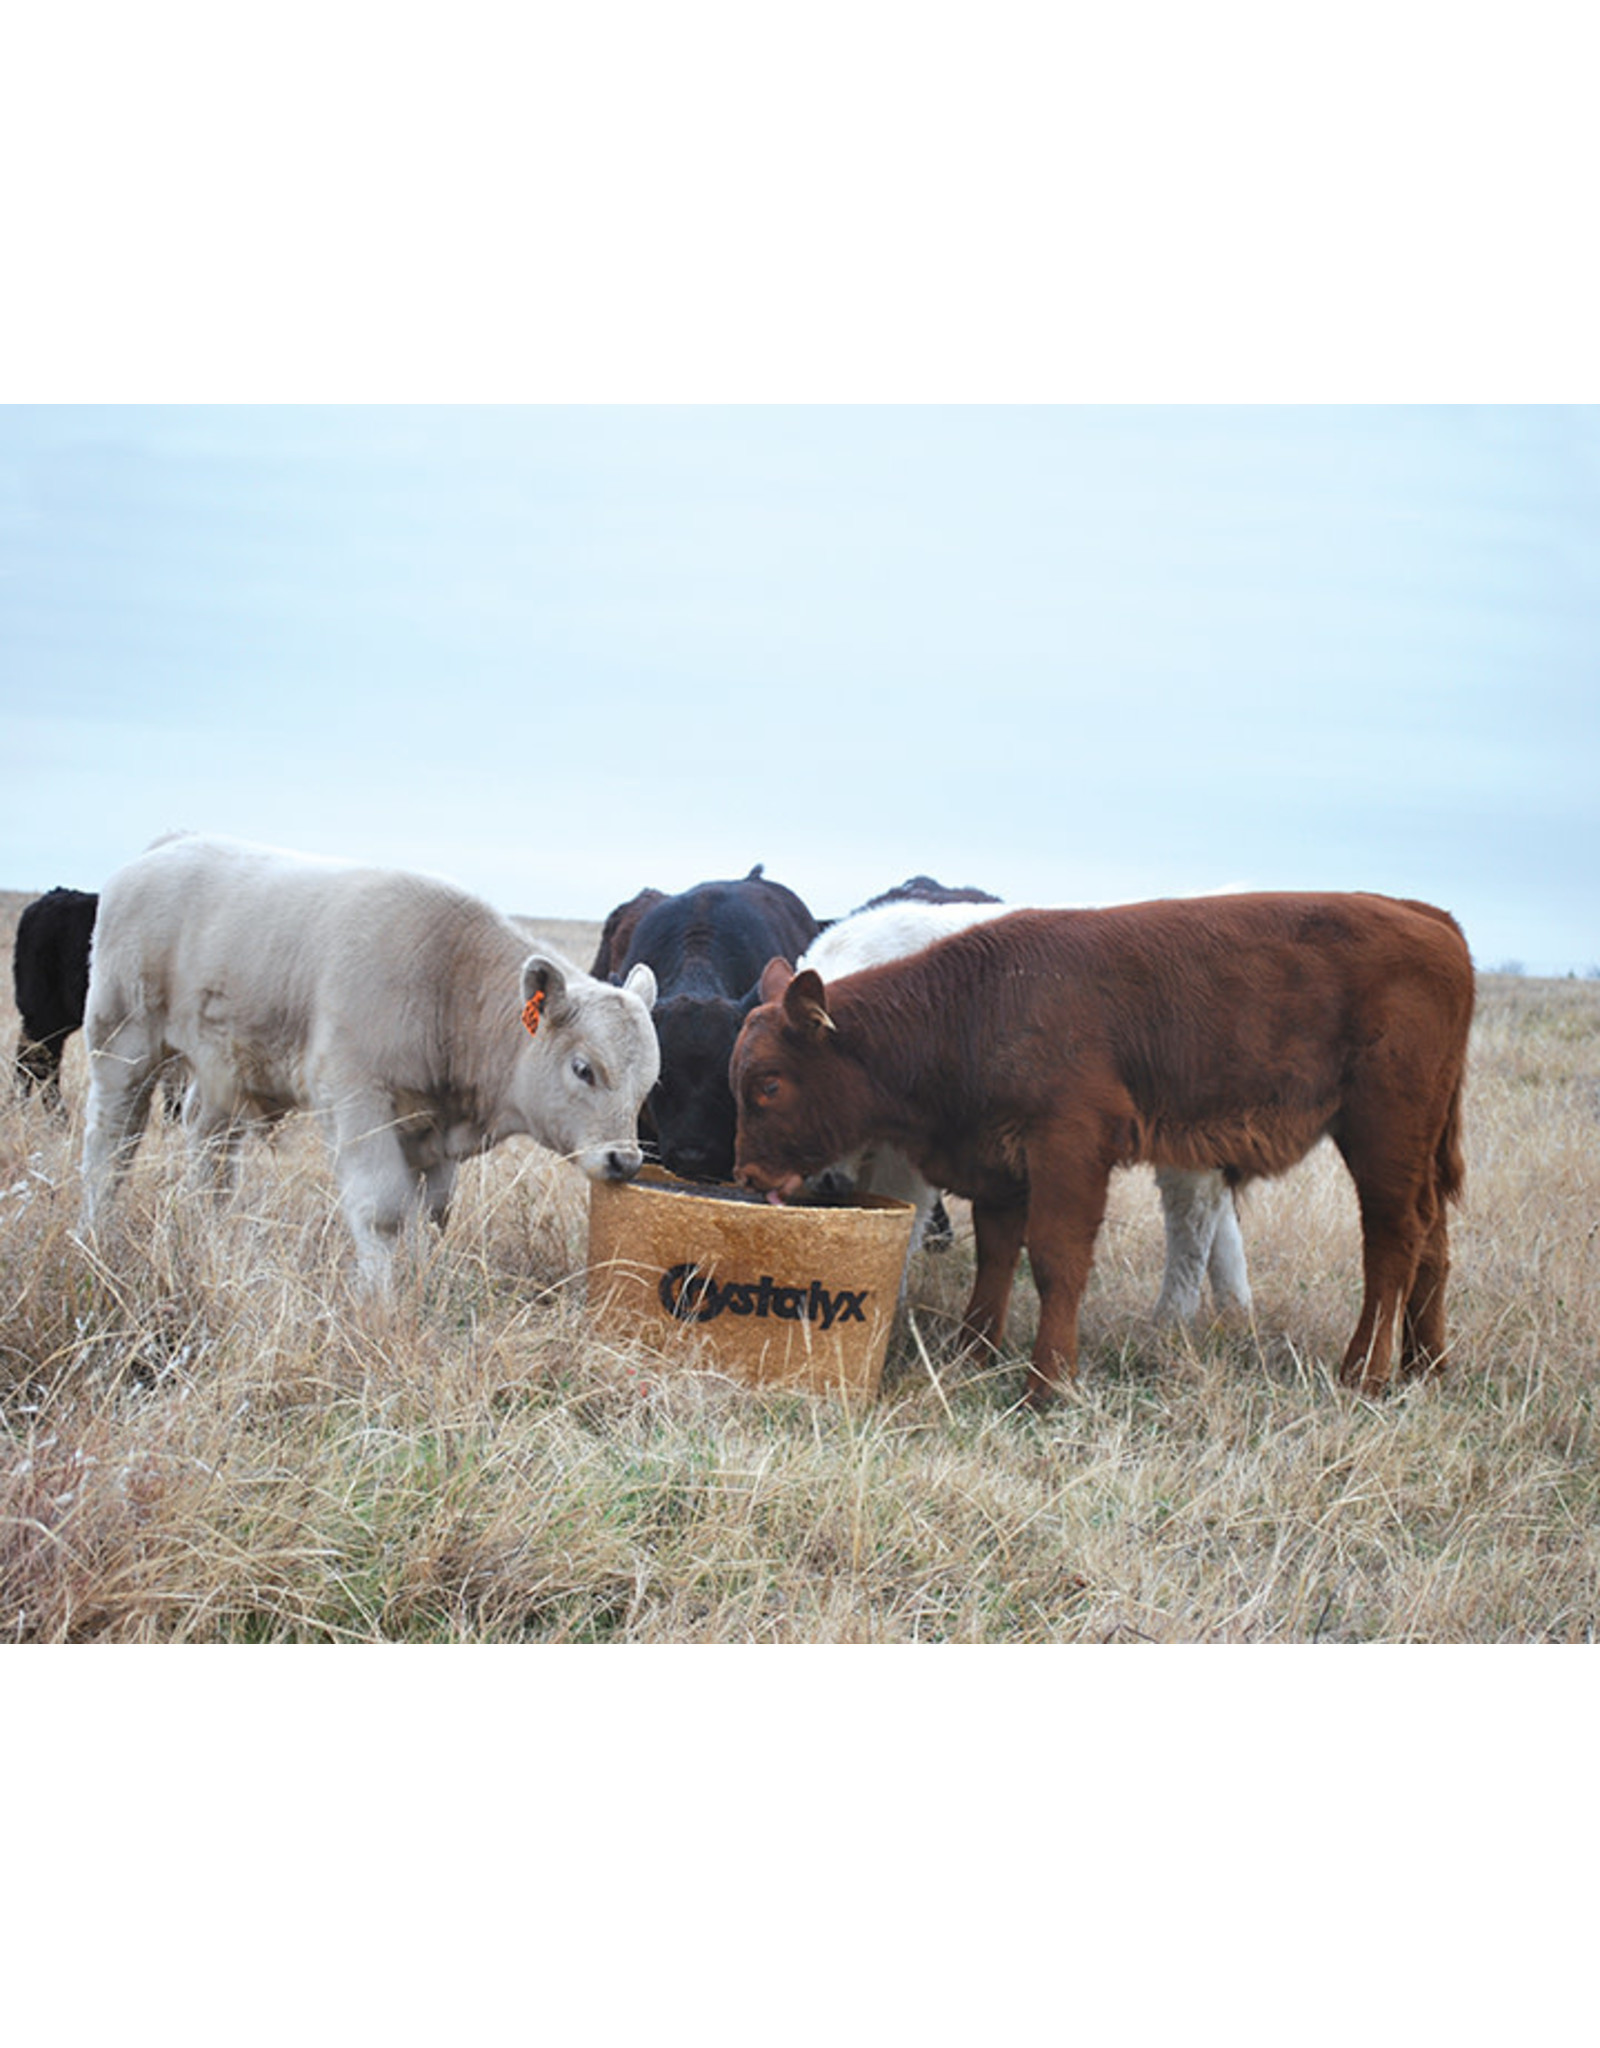 Brigade Biodegradable Barrel 200lbs  ideally fortified and suited for weaning calves, as well as 45 days prior to breeding. Statistically shown to add .38 lbs average daily gain, decrease mortality by half, and lower sick calves by almost HALF.